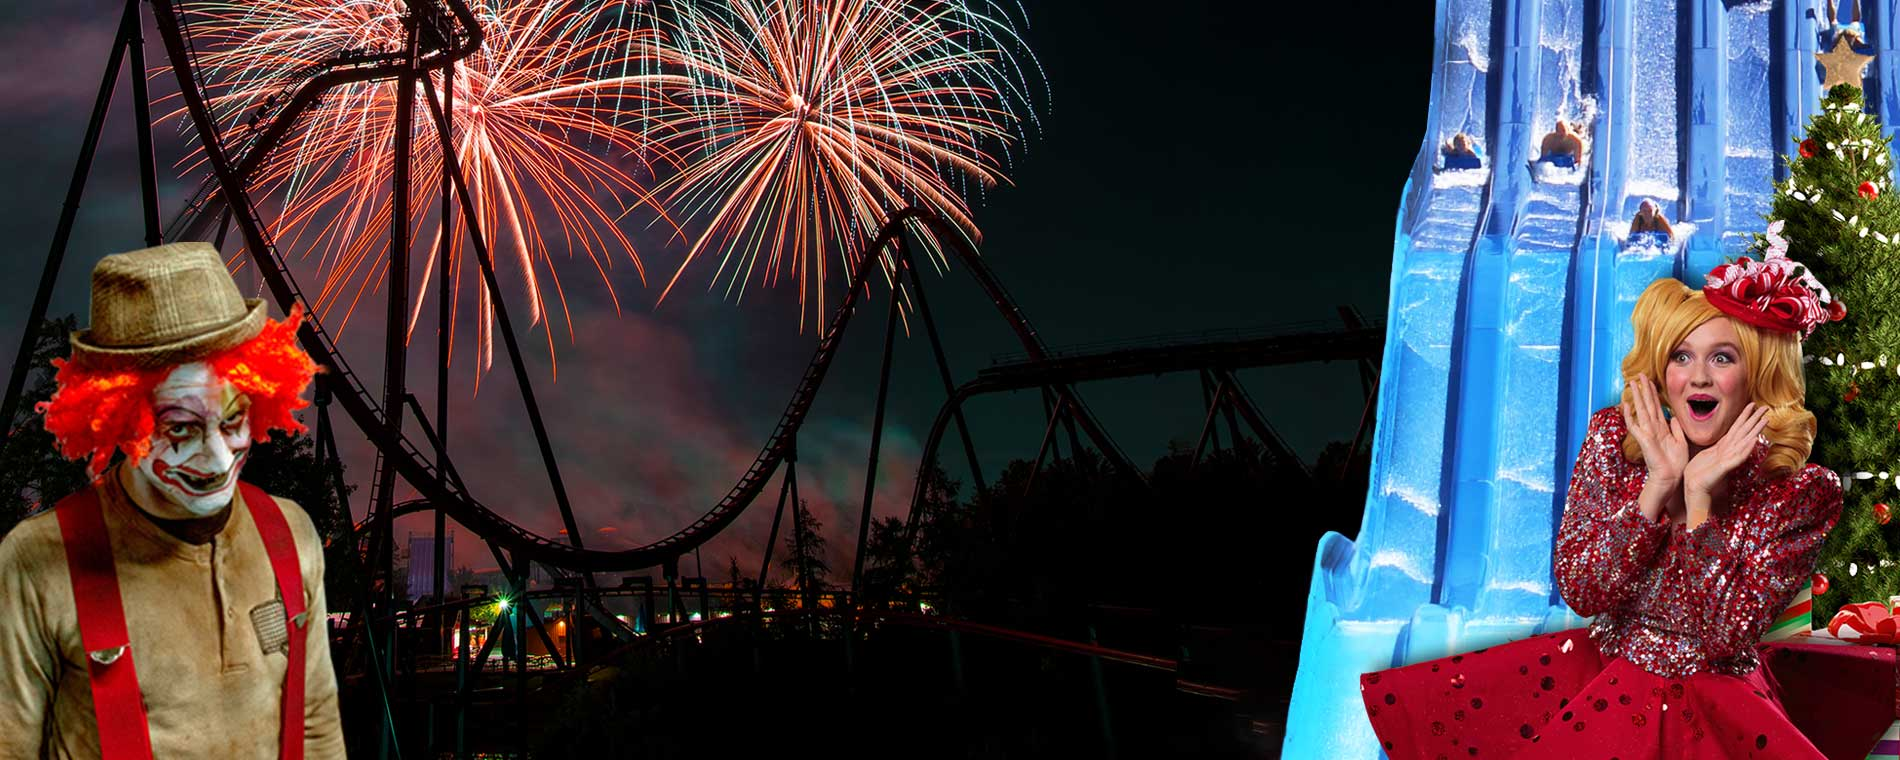 Fireworks, Splash Works, Halloween Haunt, and WinterFest at Canada's Wonderland